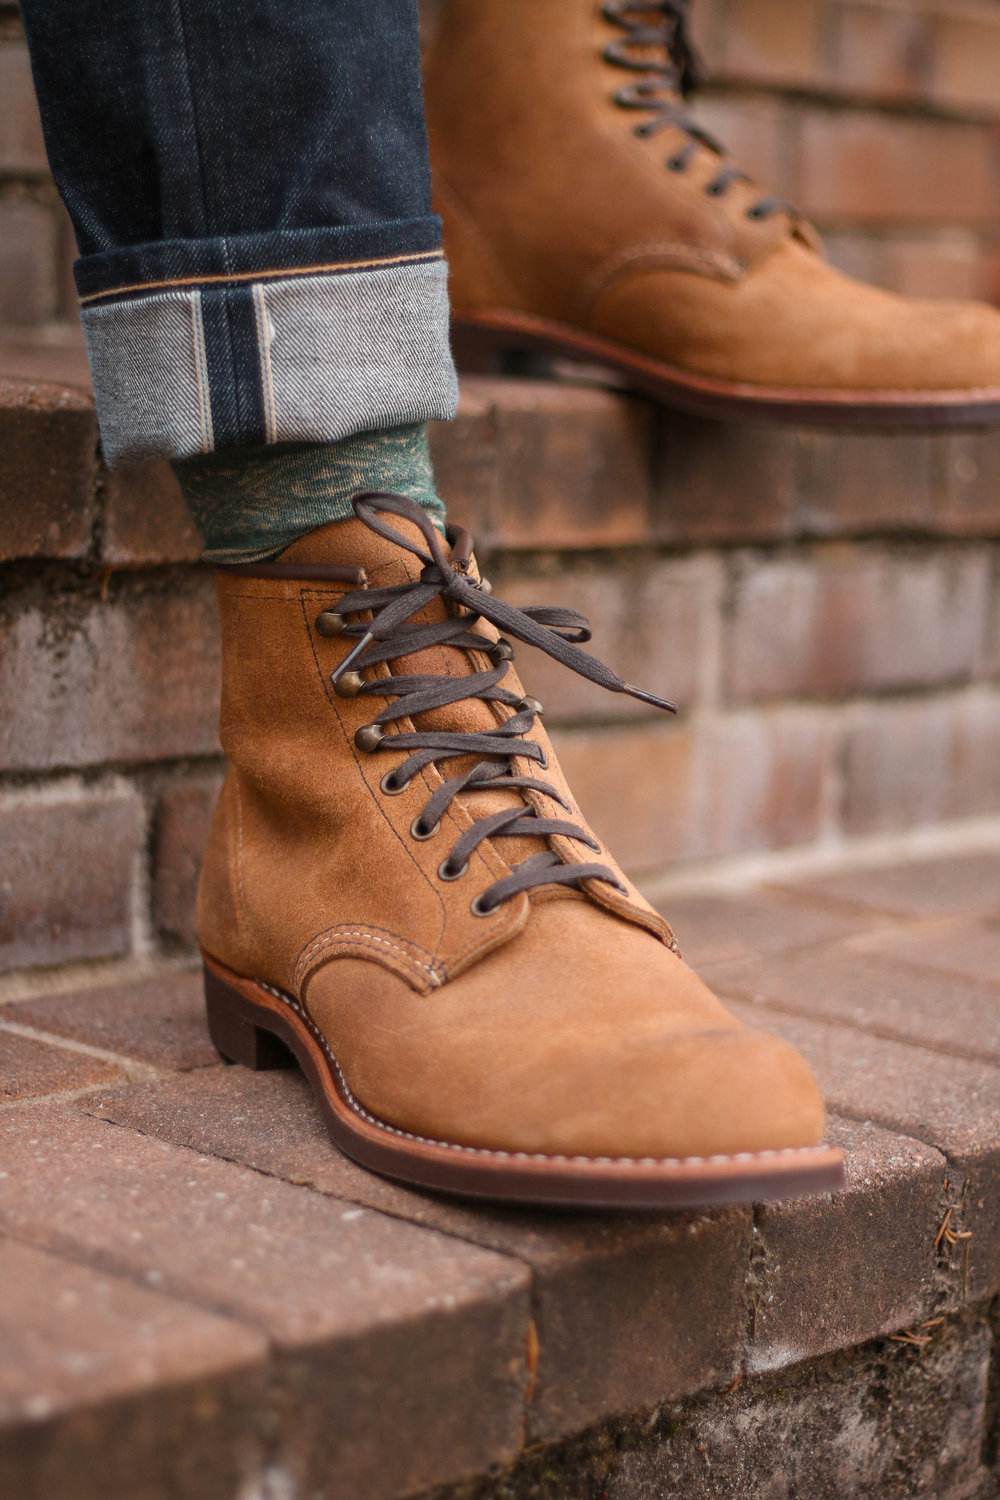 Red Wing Blacksmith Rough Out Boots for $75 from Nordstrom Rack